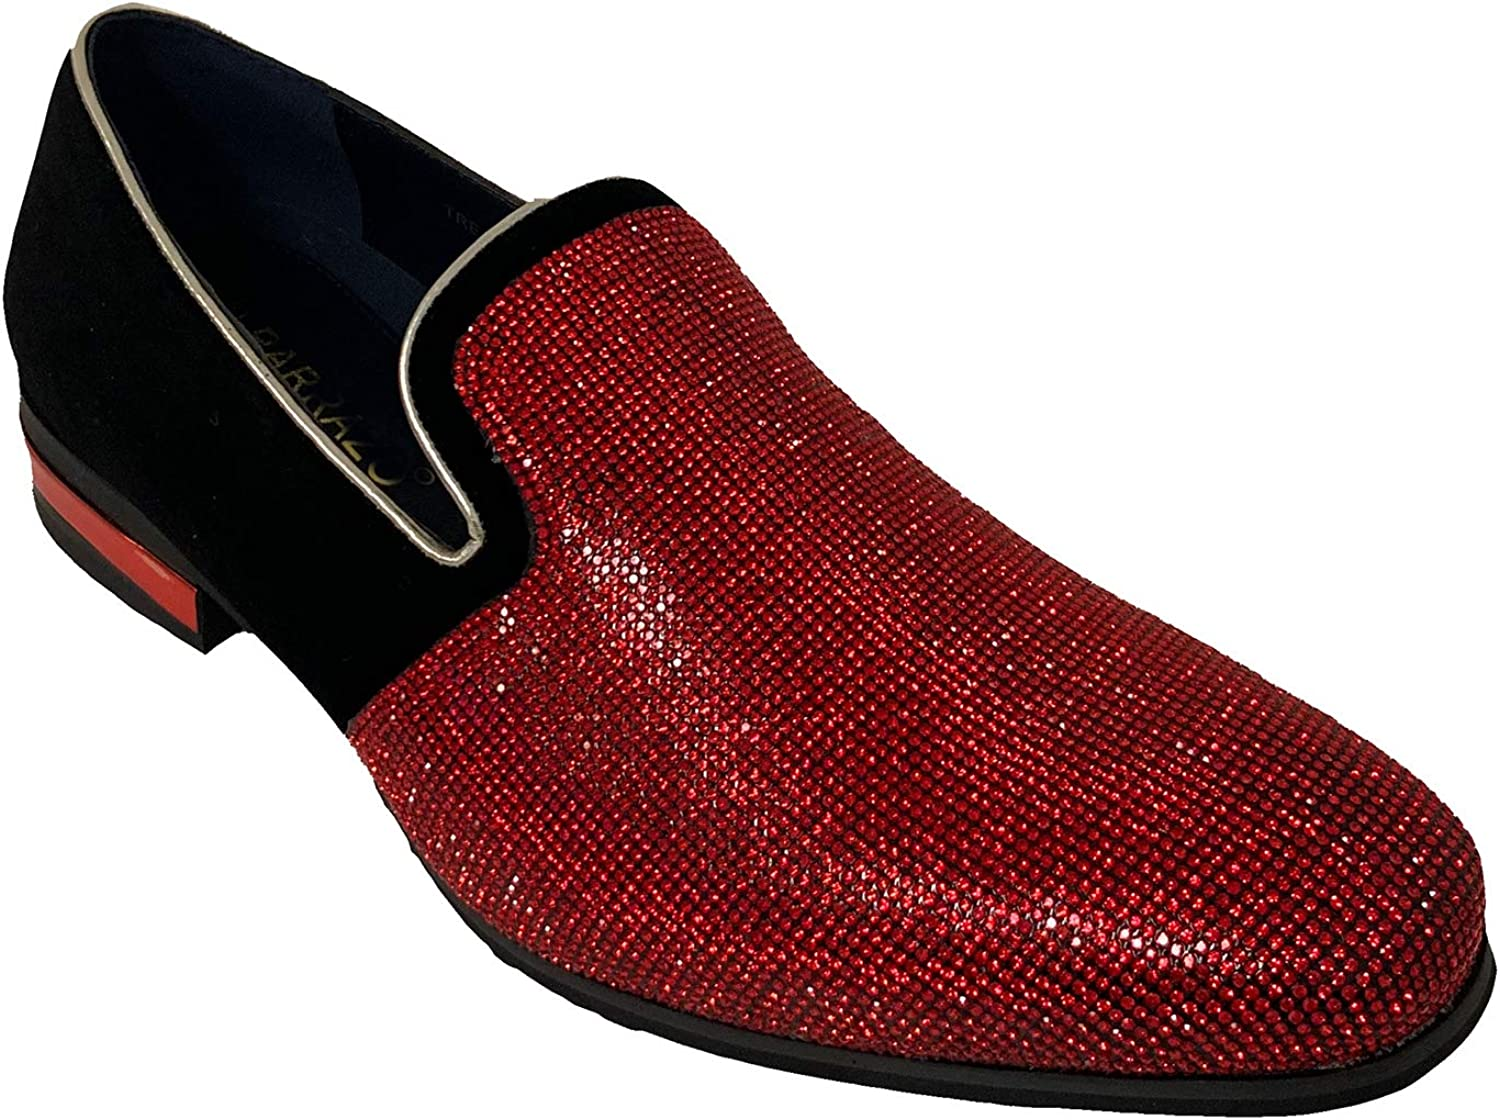 New Men Vintage Velvet Dress Shoes Tuxedos Loafers Slip On Classic Harell-5